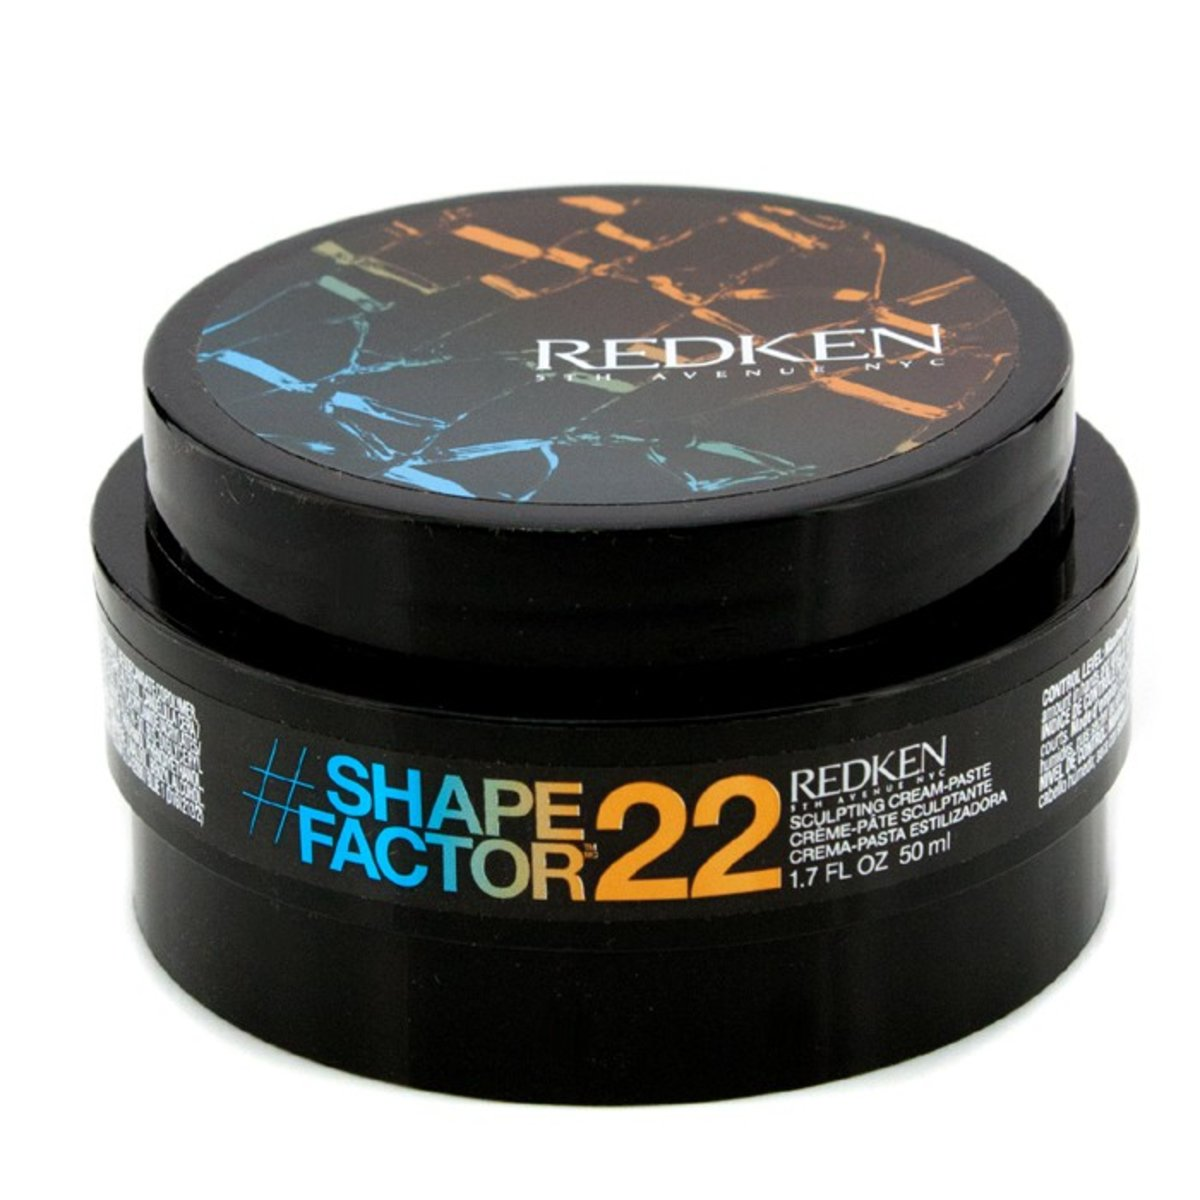 Styling Shape Factor 22 Sculpting Cream-Paste  -[Parallel Import Product]